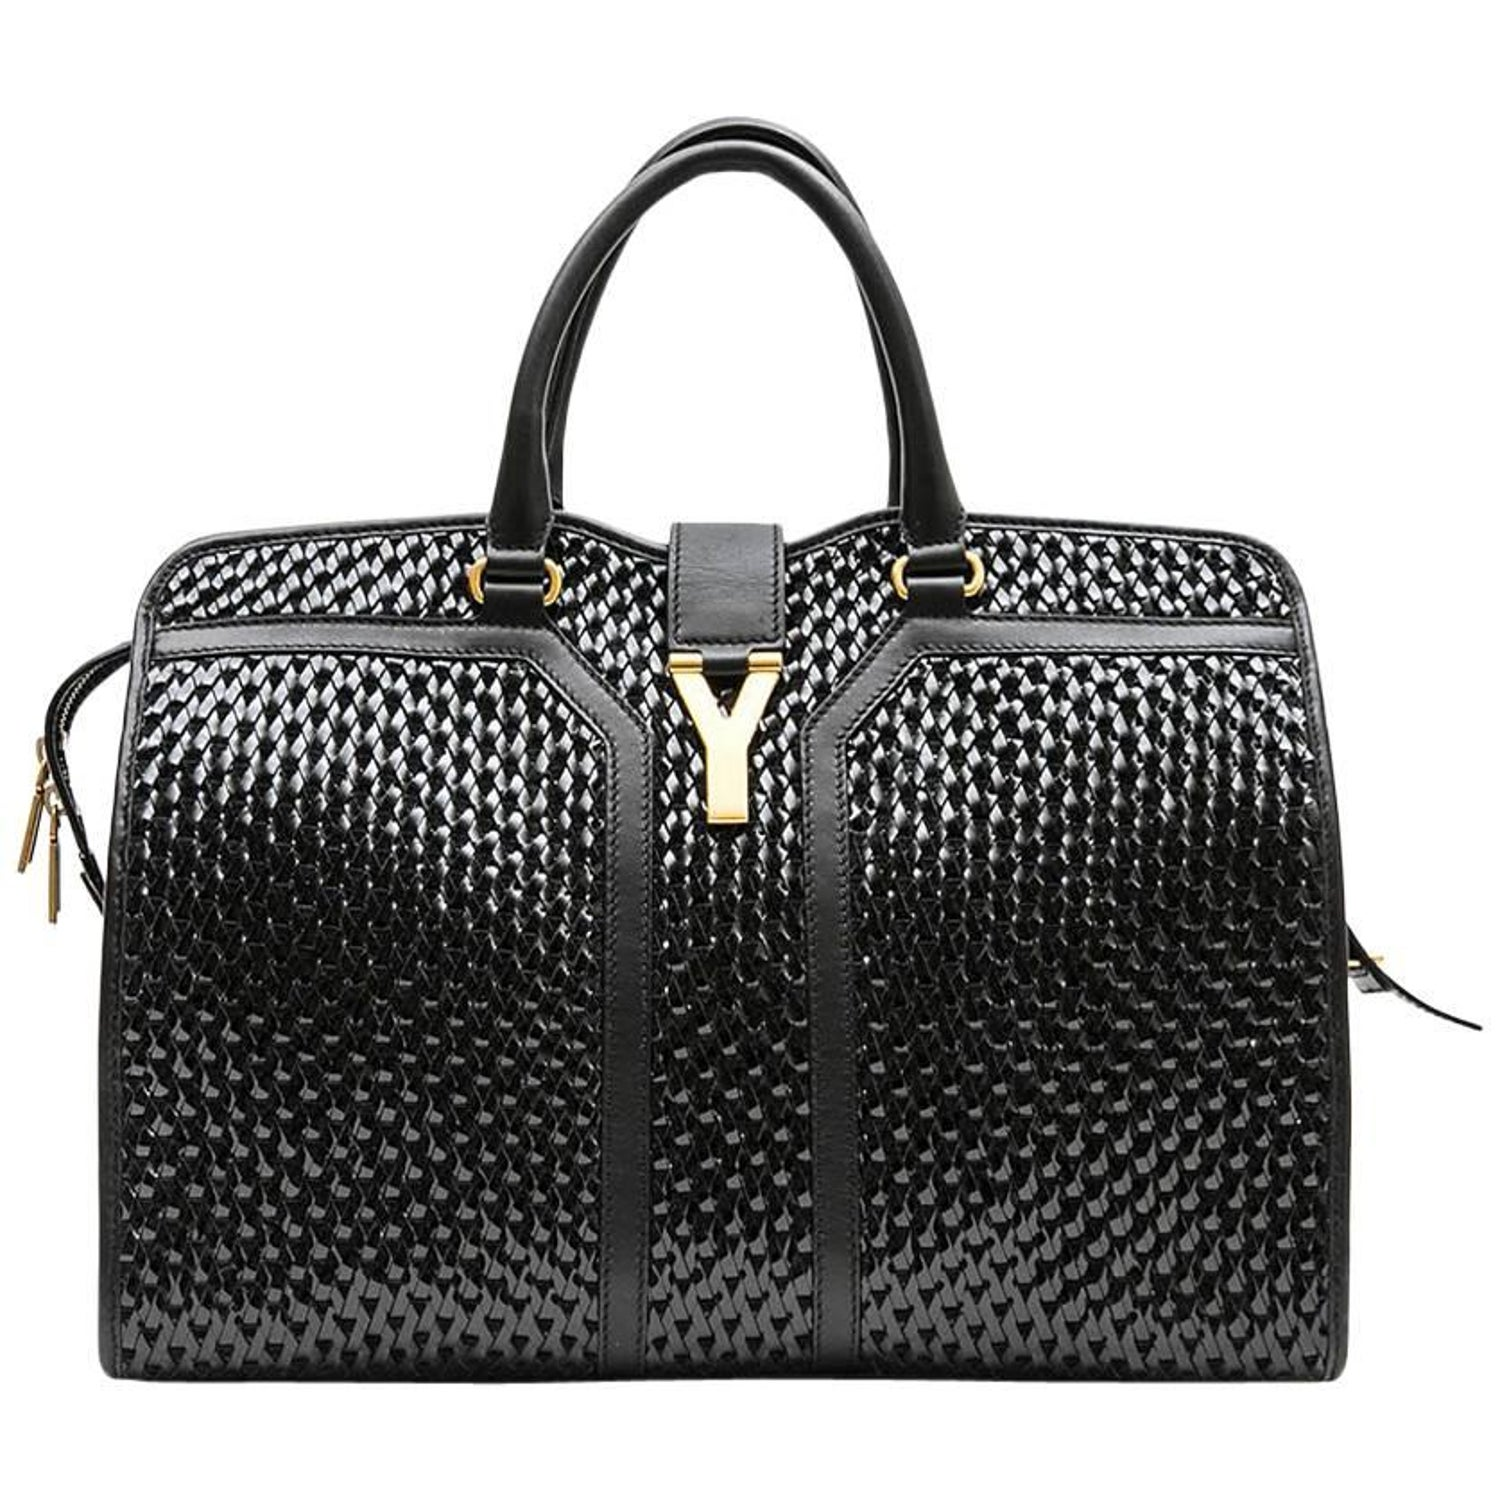 aaafc4eb4d YVES SAINT LAURENT  Chyc  Bag in Black Leather and Breaded Vinyl at 1stdibs